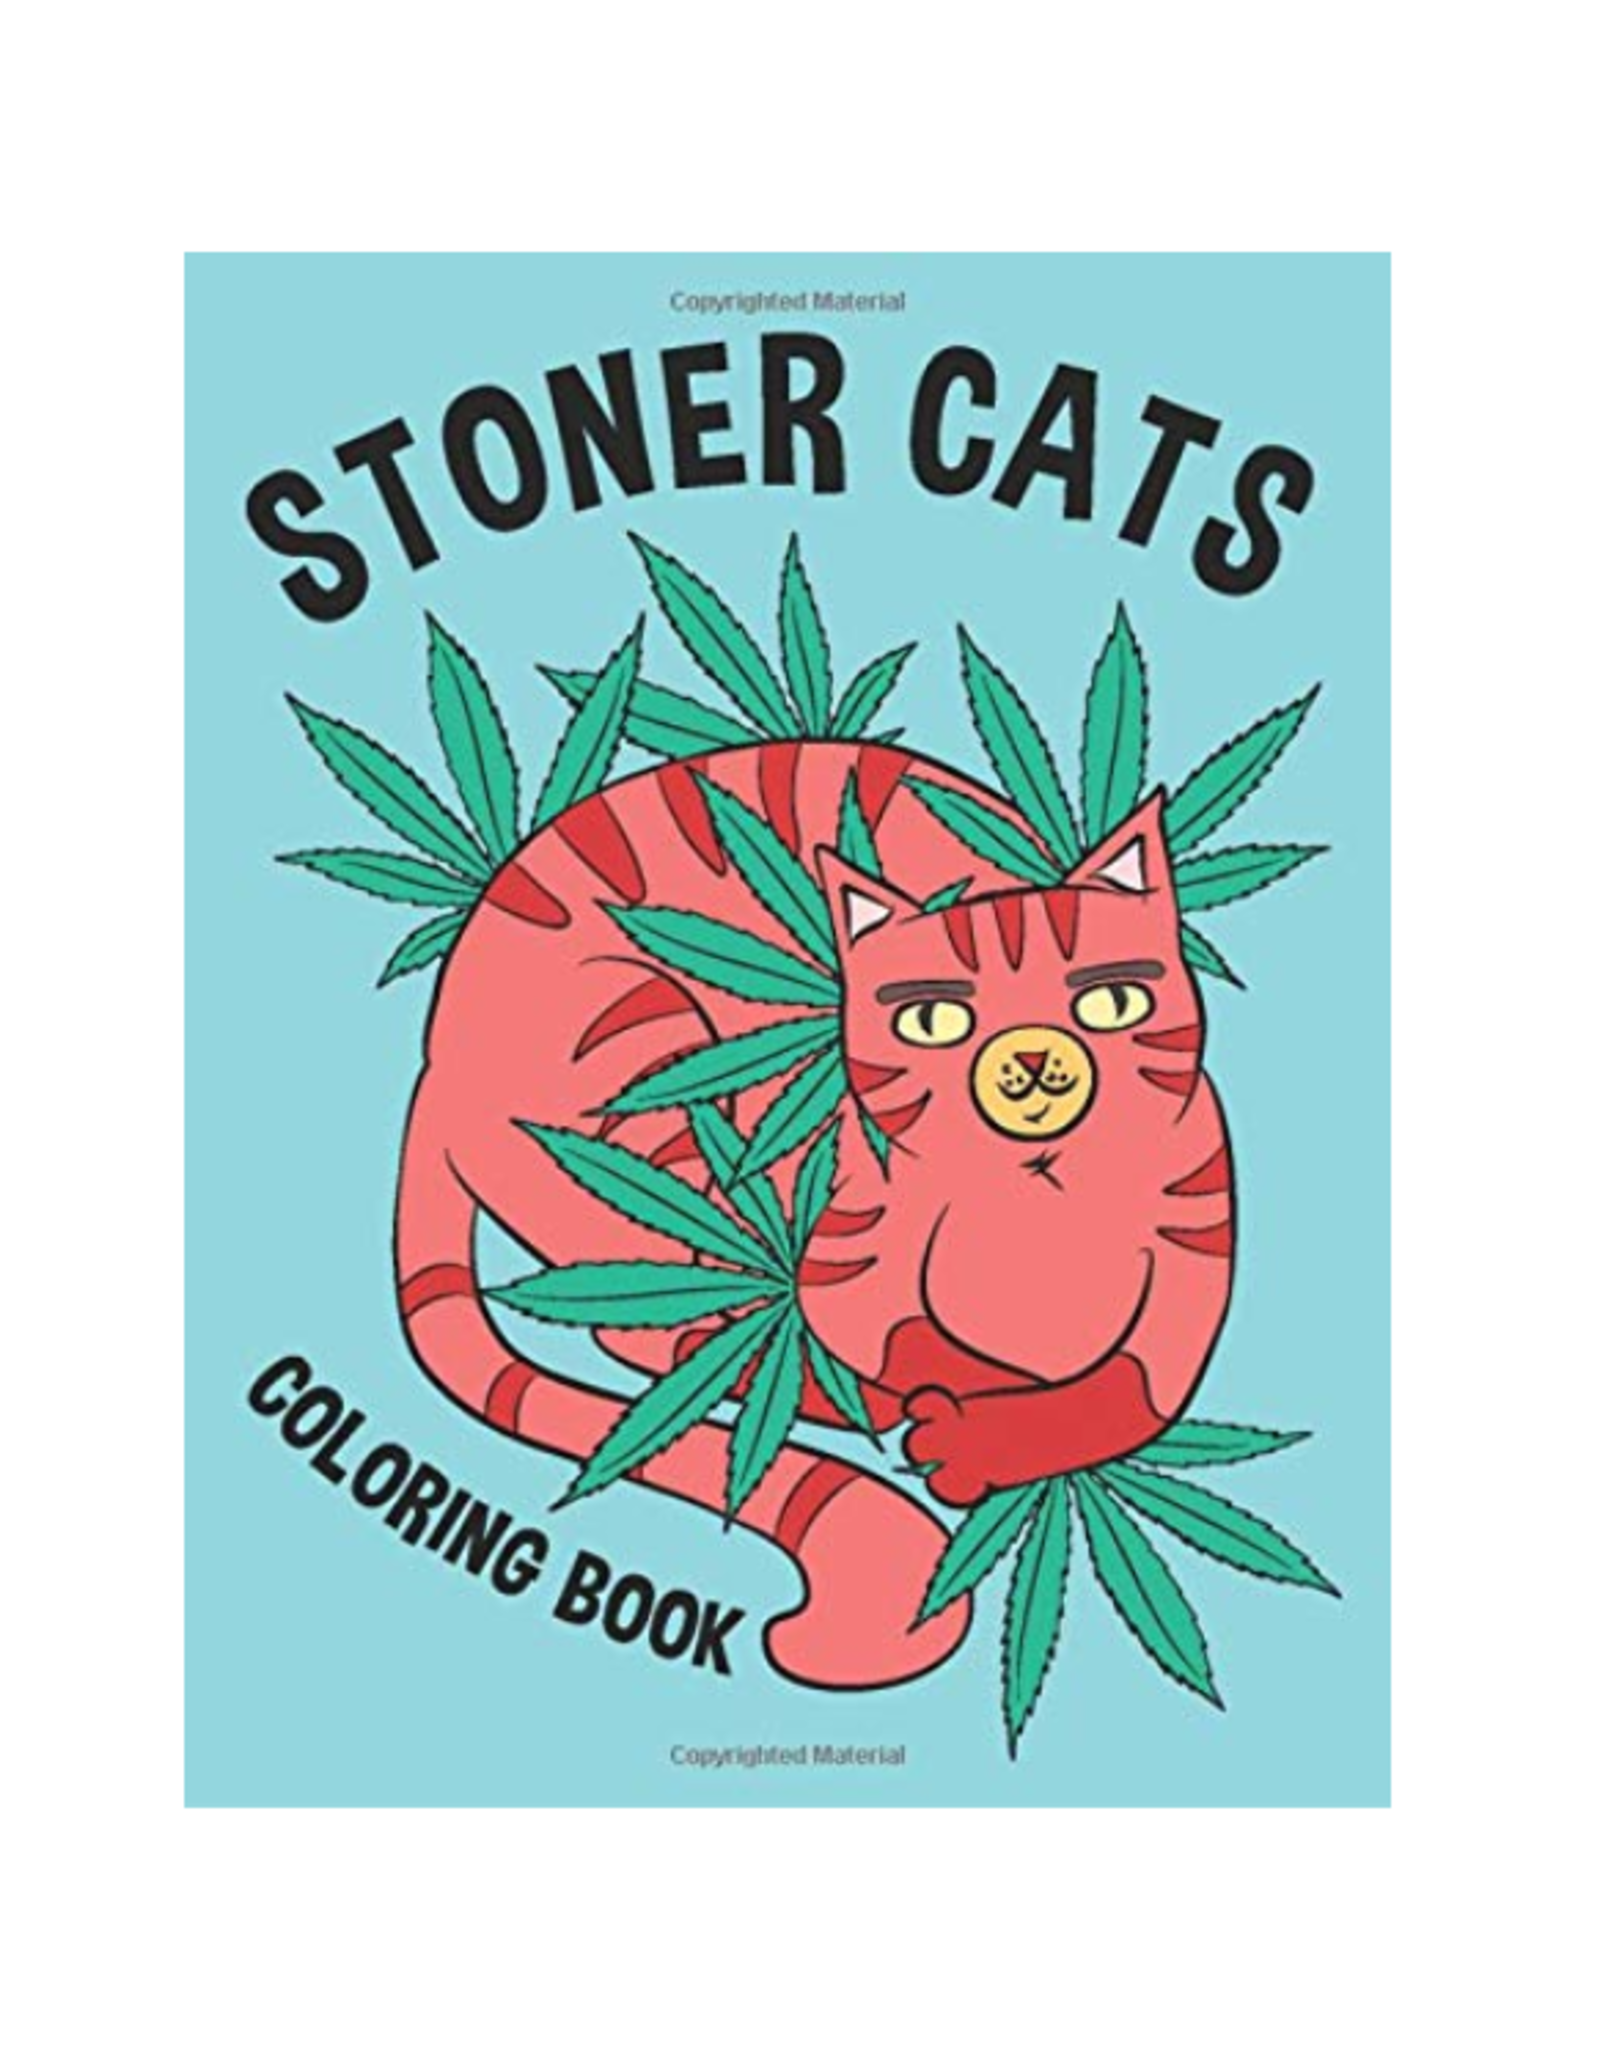 High Press Colouring Book for Adults, Stoner Cats